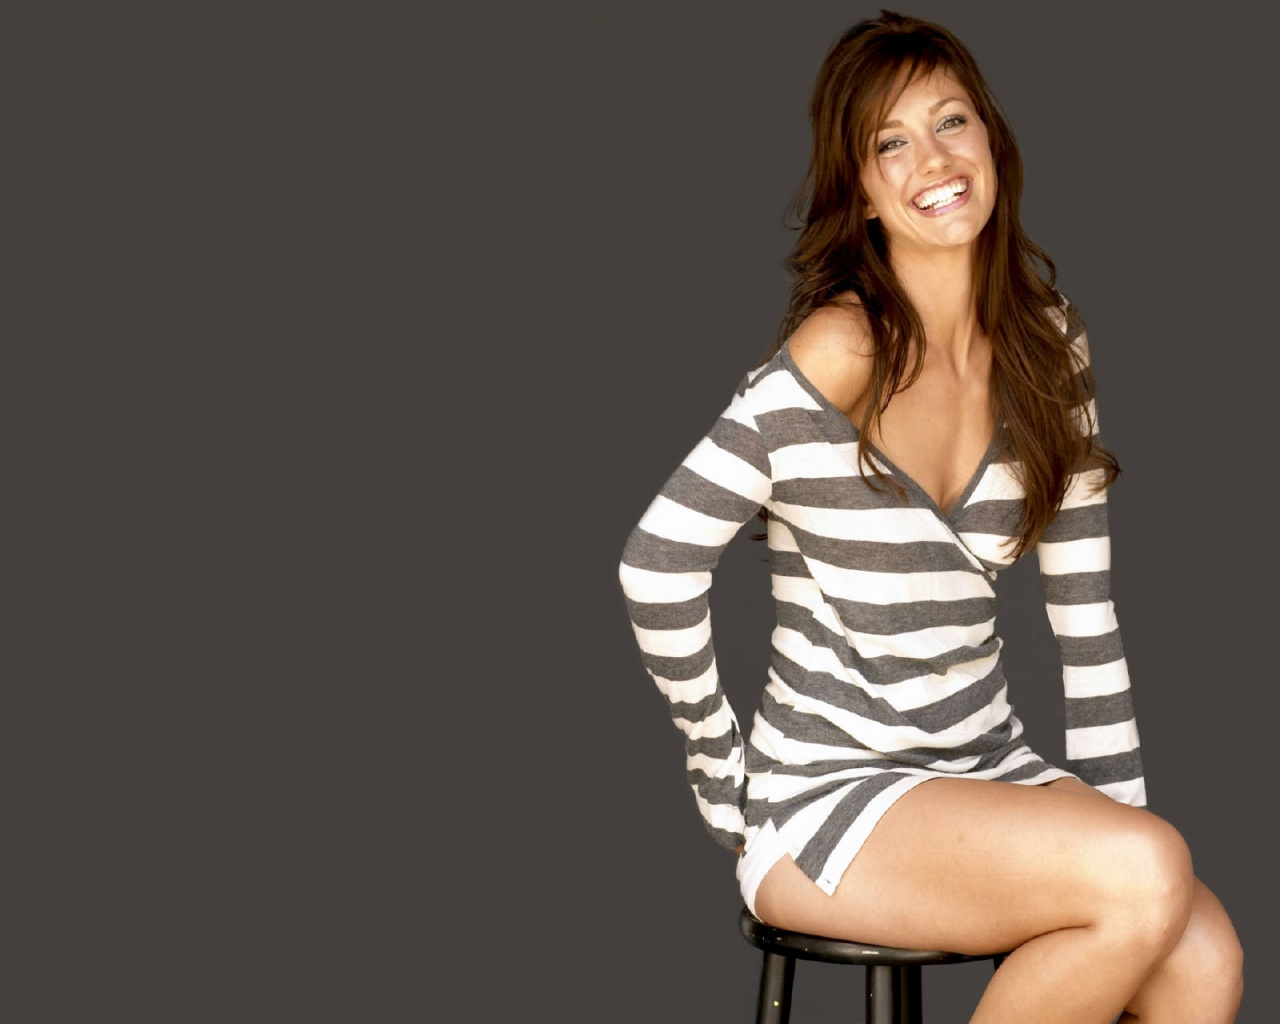 Minka Kelly wallpaper Minka Kelly con vestido rayas   Wallpaper